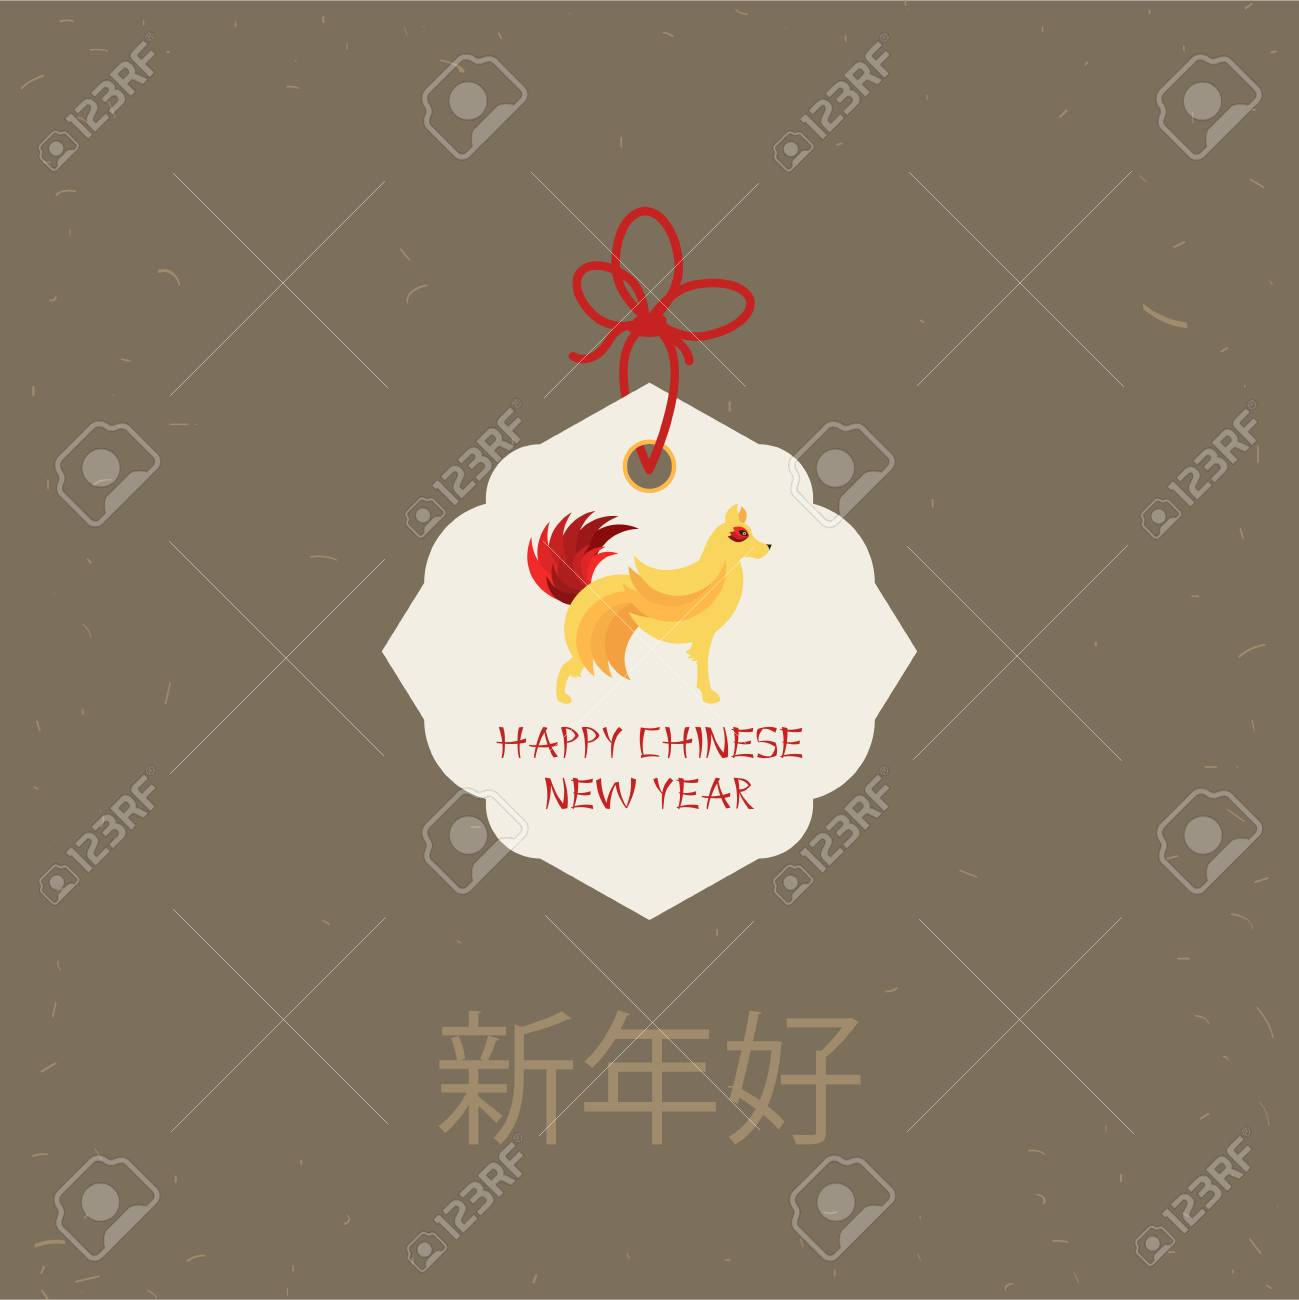 Vector Tags With Illustration Of Dog Symbol Of 2018 On The Chinese